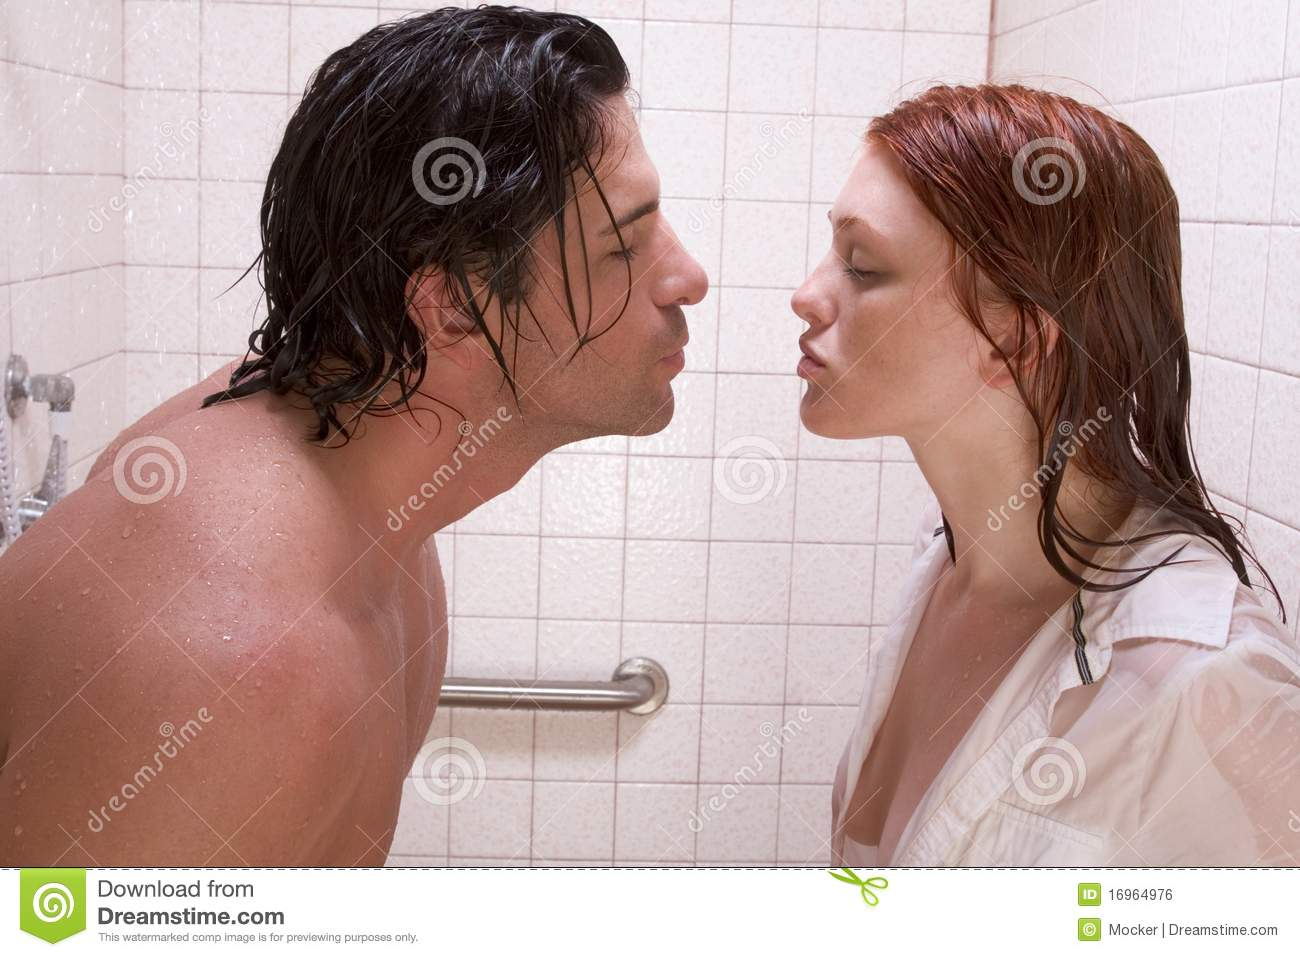 naked couples in the shower kissing